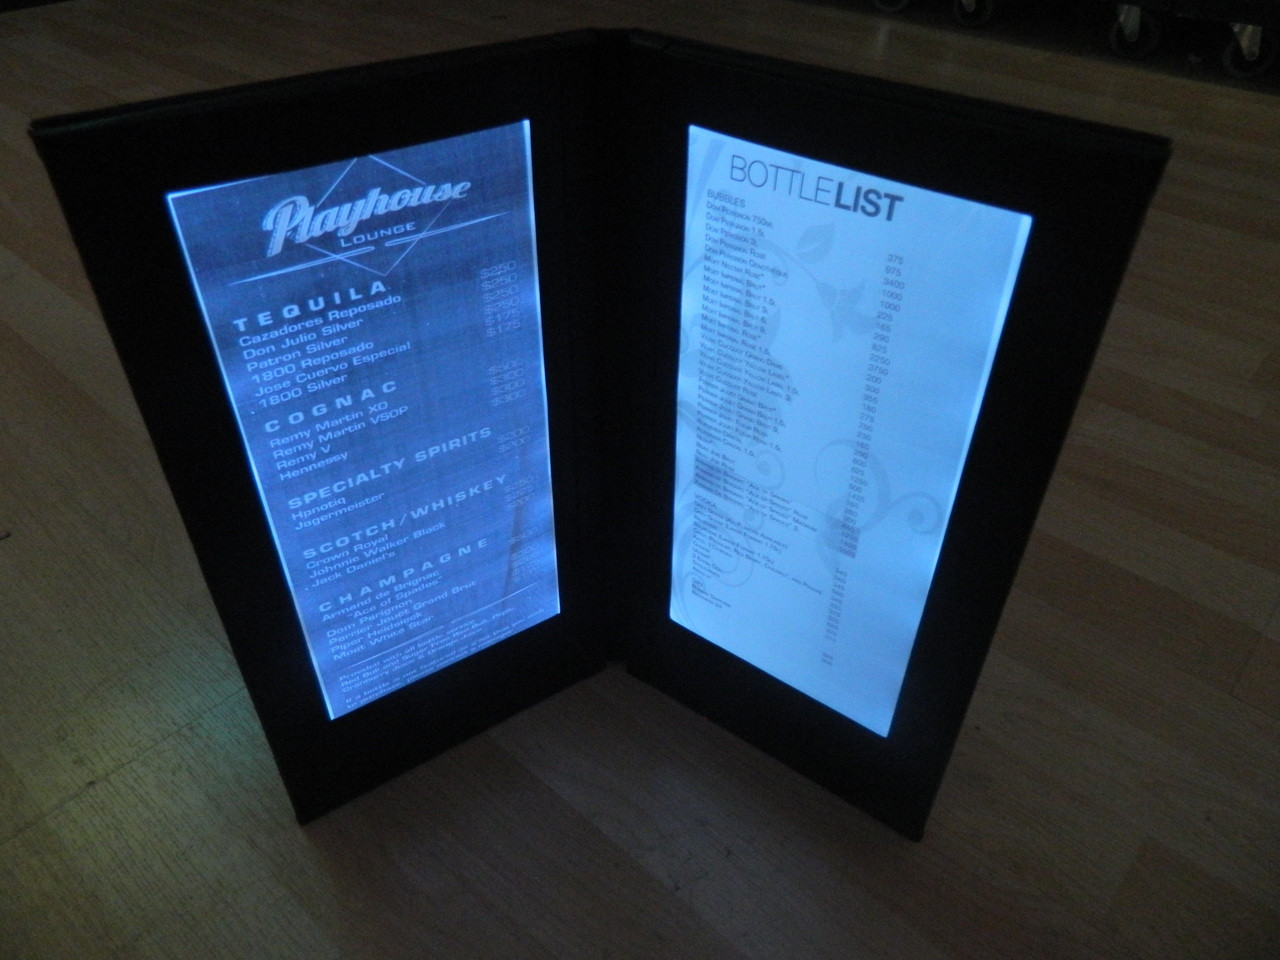 LED, Menu, light up, backlit, glow, illuminated, glowing, LED MENU